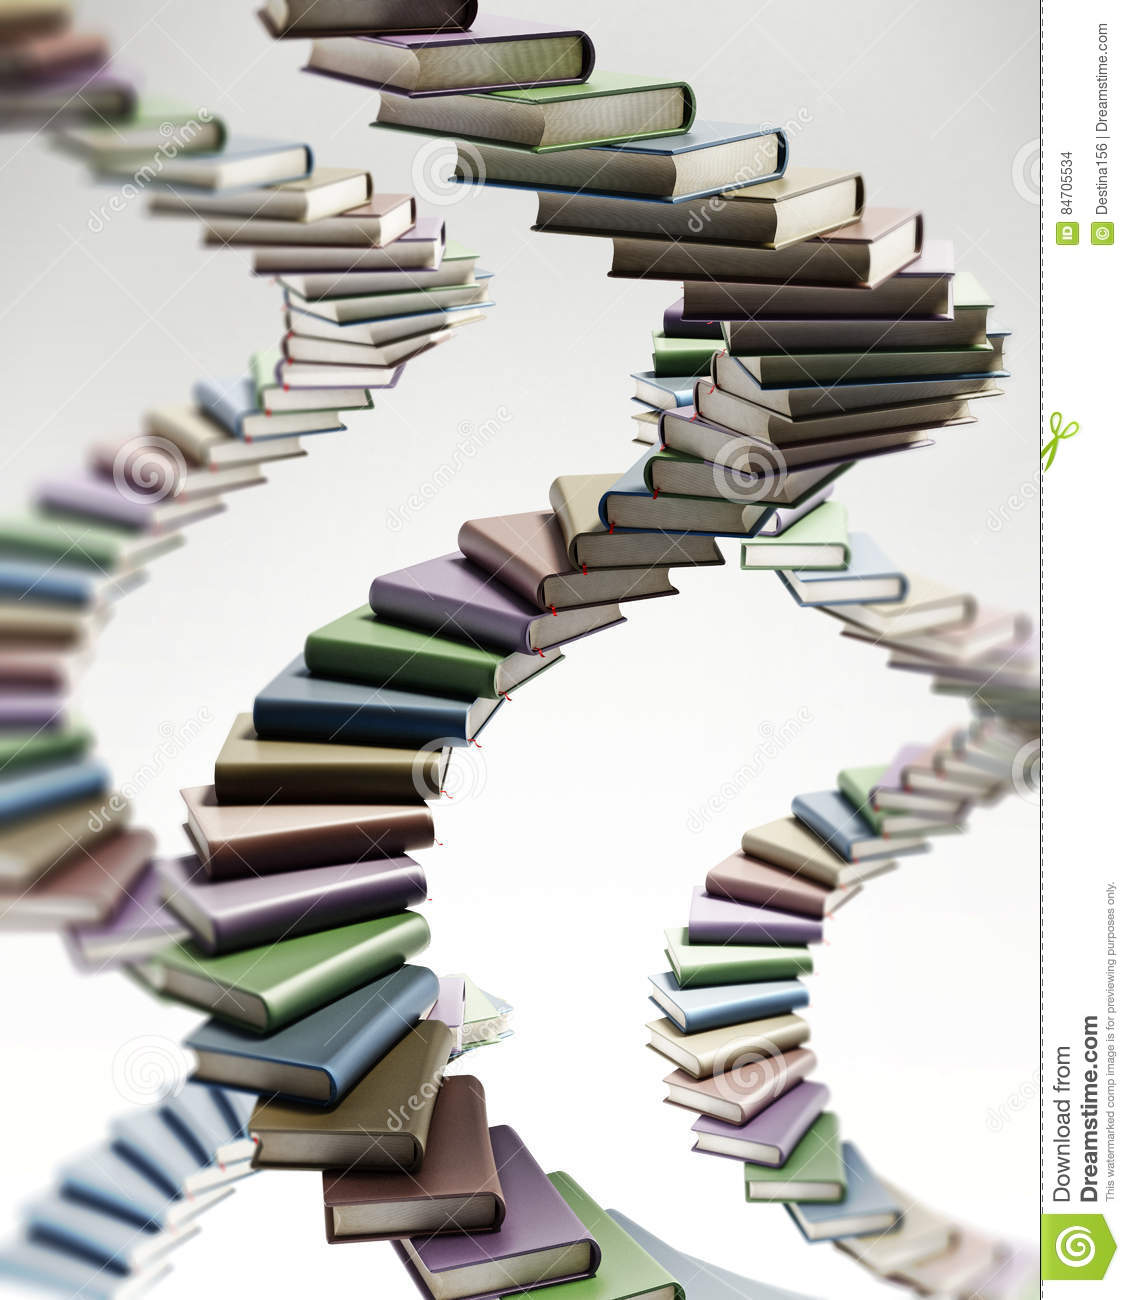 Spiral Staircase Shaped Multi Colored Books 3d Illustration Stock